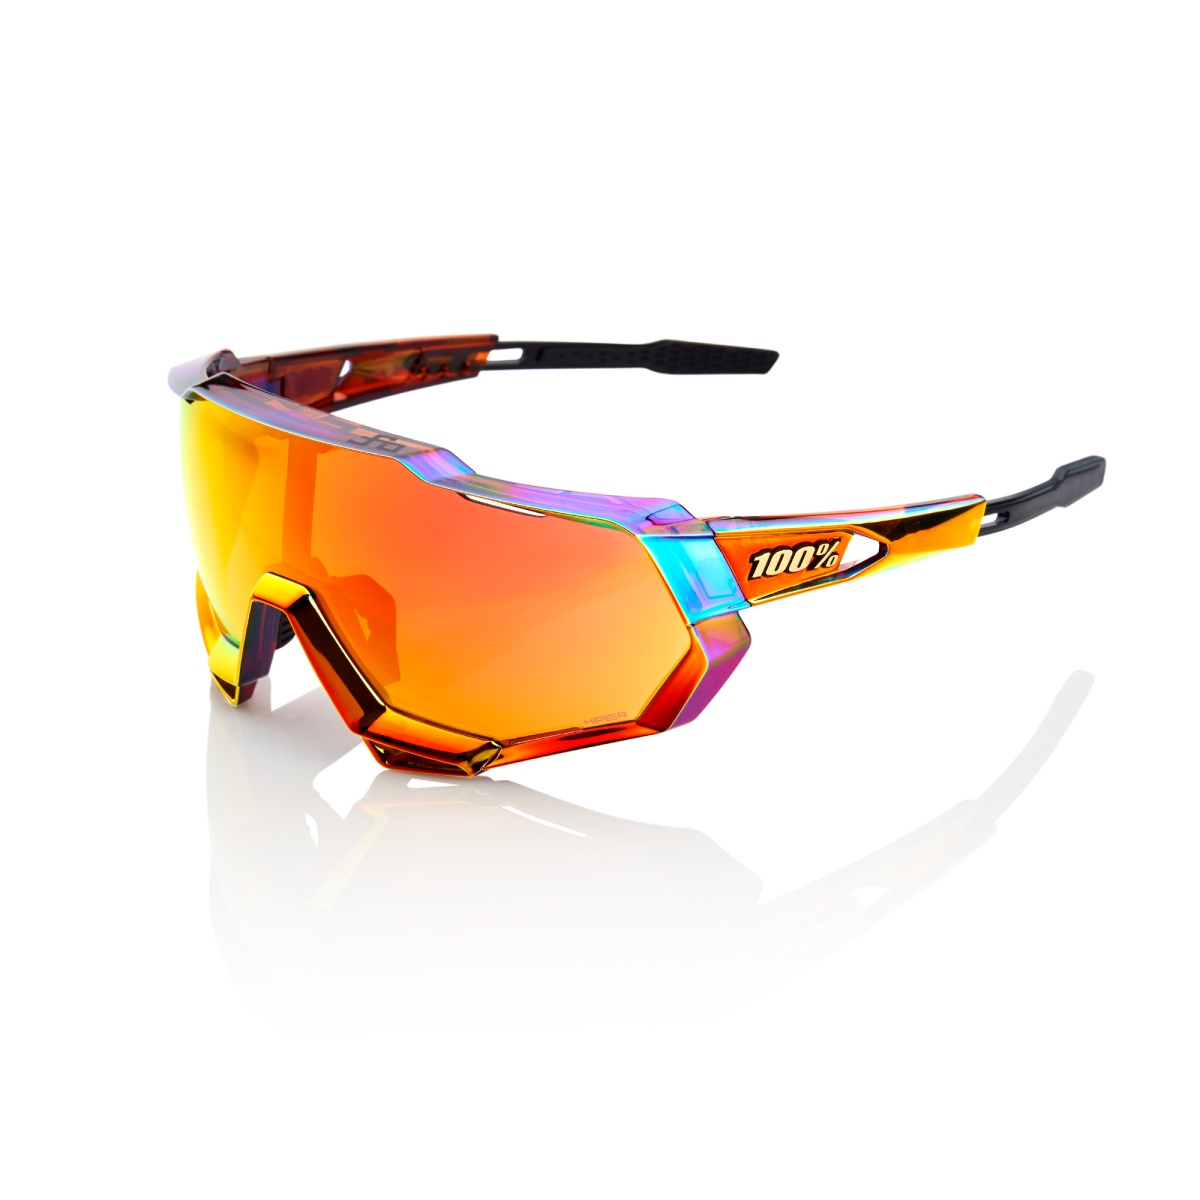 100% Limited Edition Peter Sagan Speedtrap sunglasses.